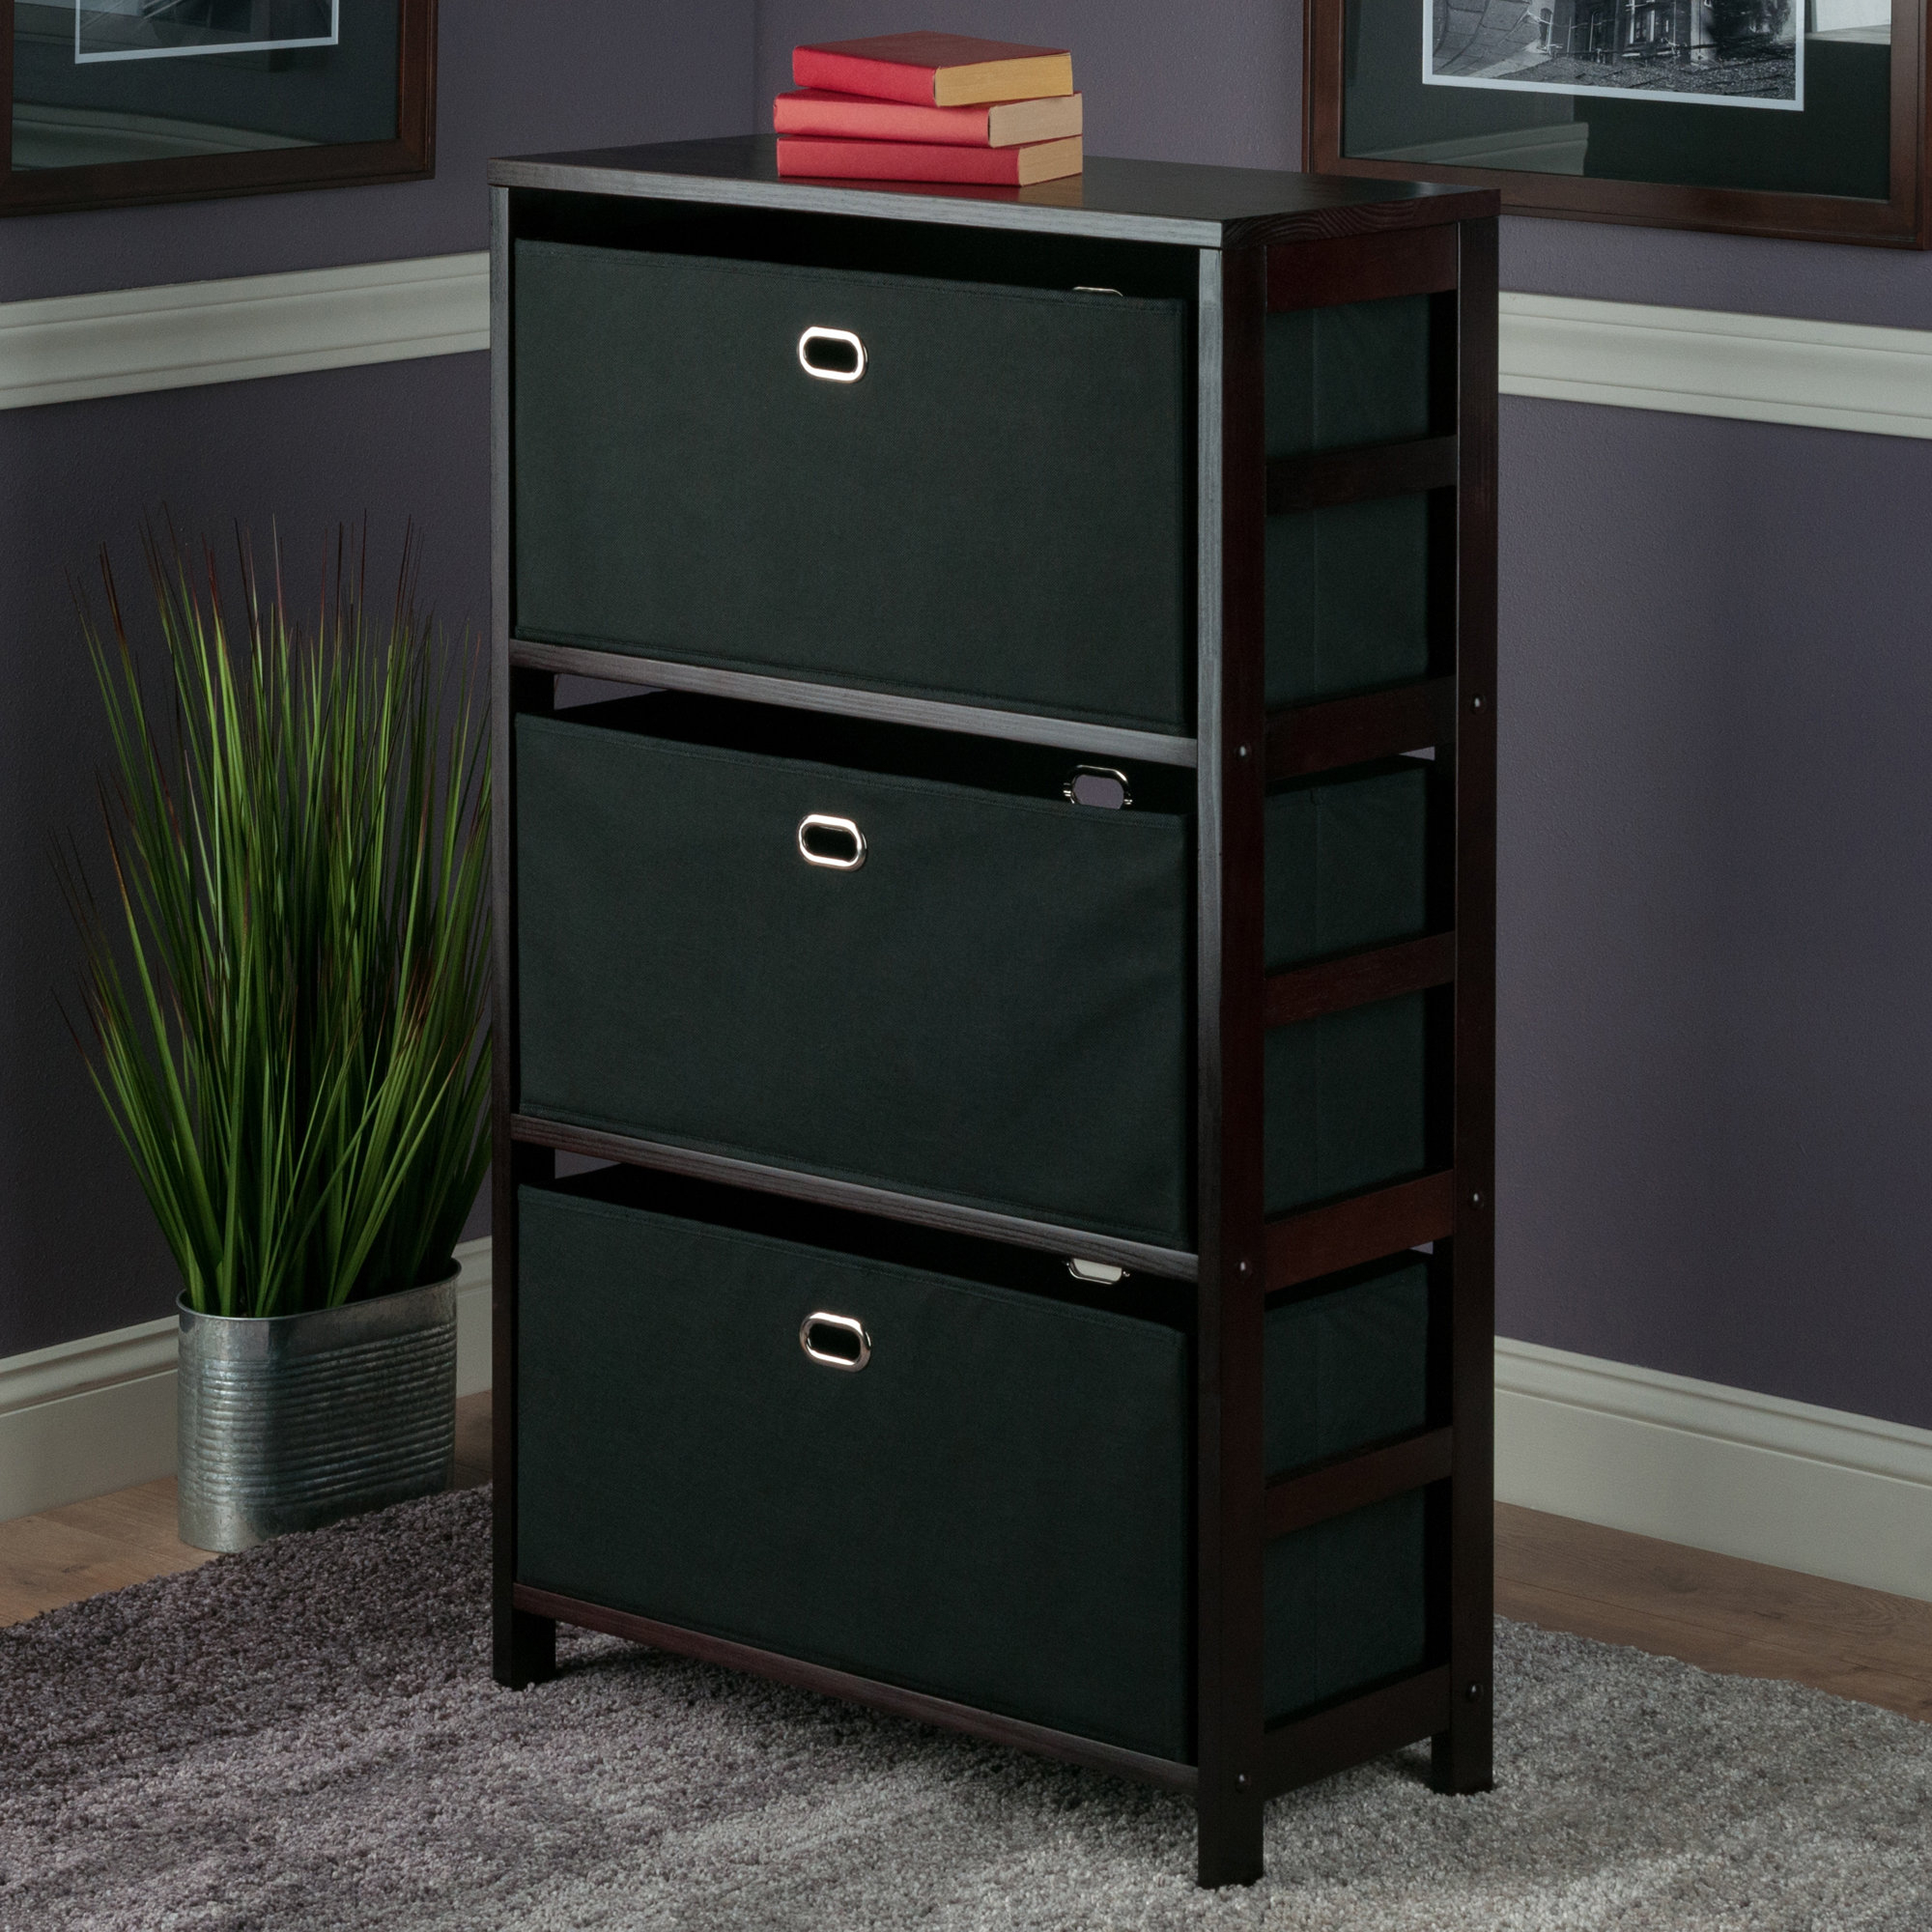 Newest Tinoco Storage Shelf Standard Bookcases Inside Tinoco Storage Shelf Standard Bookcase (Gallery 1 of 20)